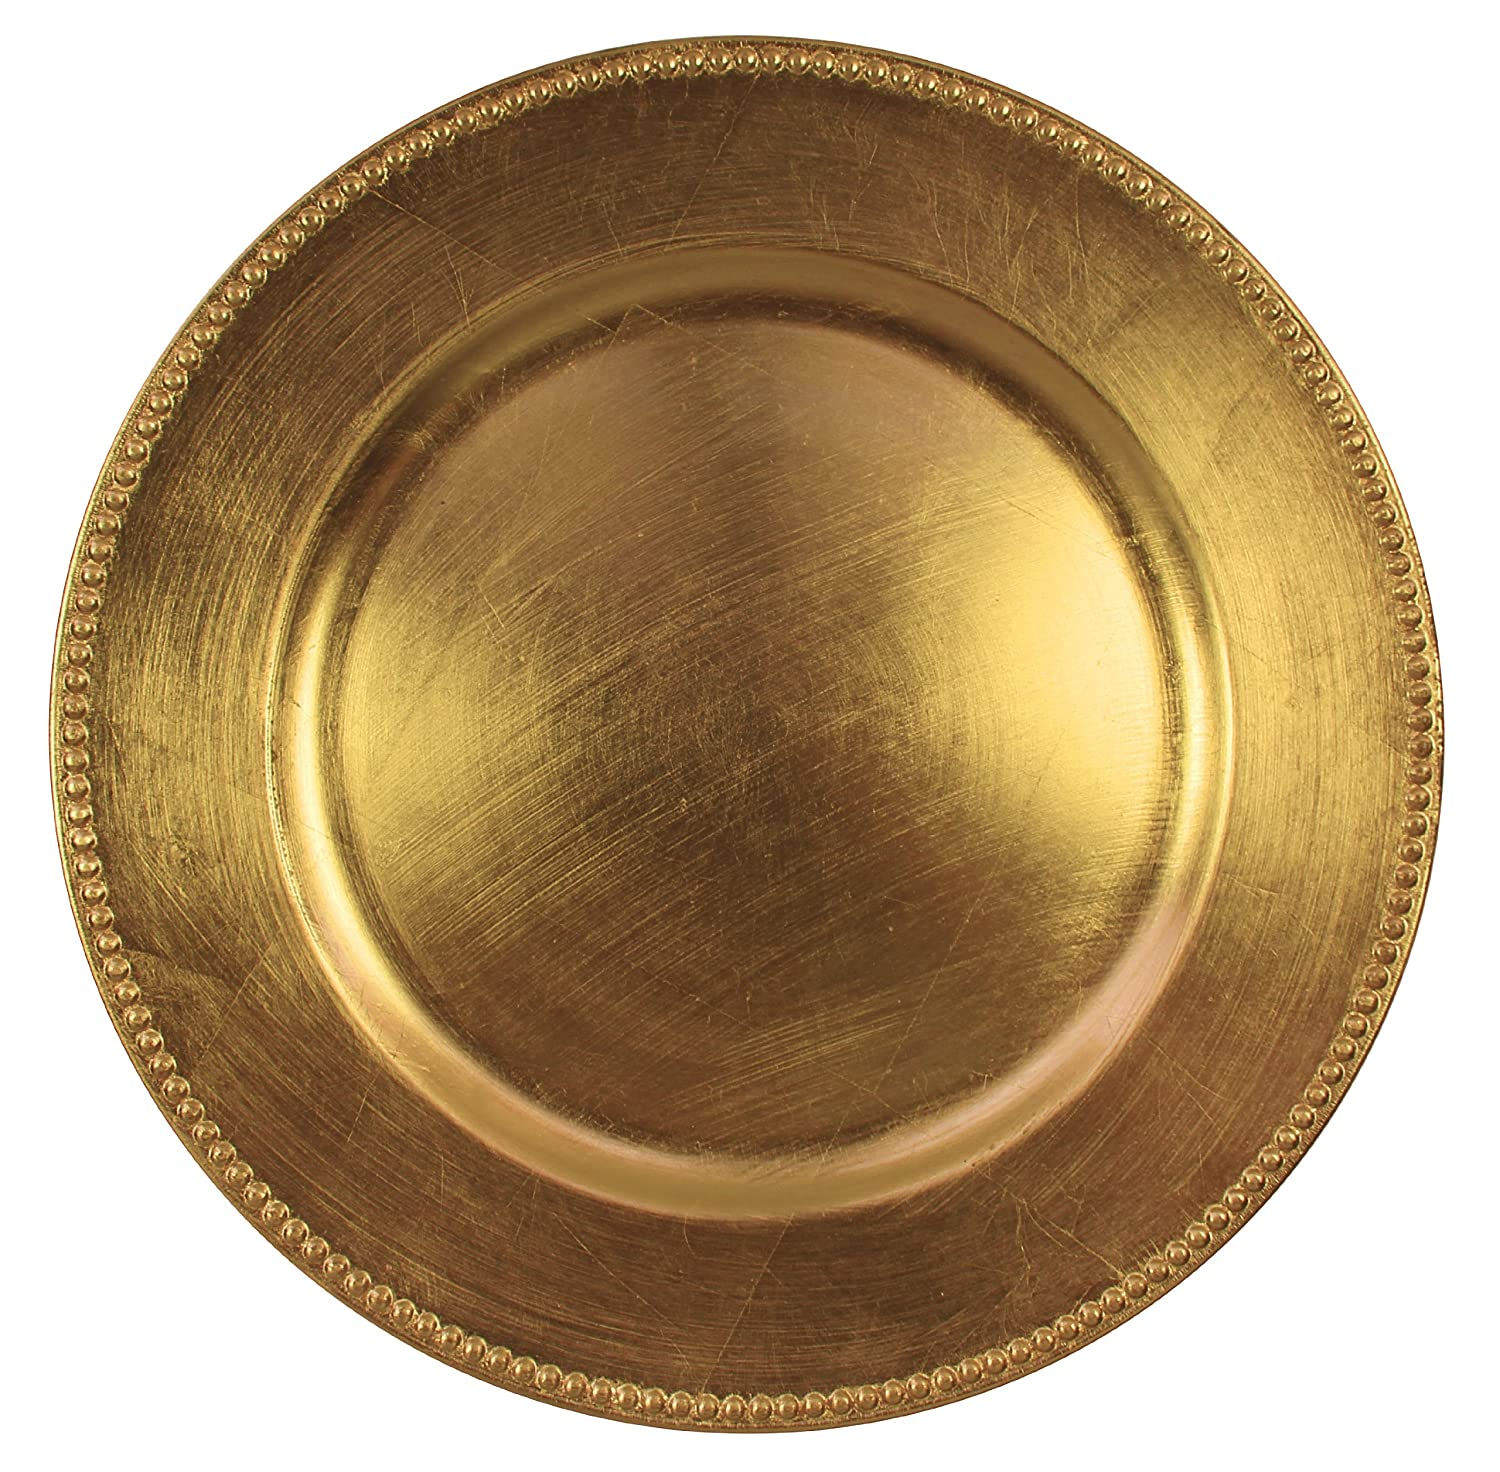 Amazon.com | Charge it by Jay Gold Beaded Round Charger Plates Set of 4 Charger u0026 Service Plates  sc 1 st  Amazon.com & Amazon.com | Charge it by Jay Gold Beaded Round Charger Plates Set ...